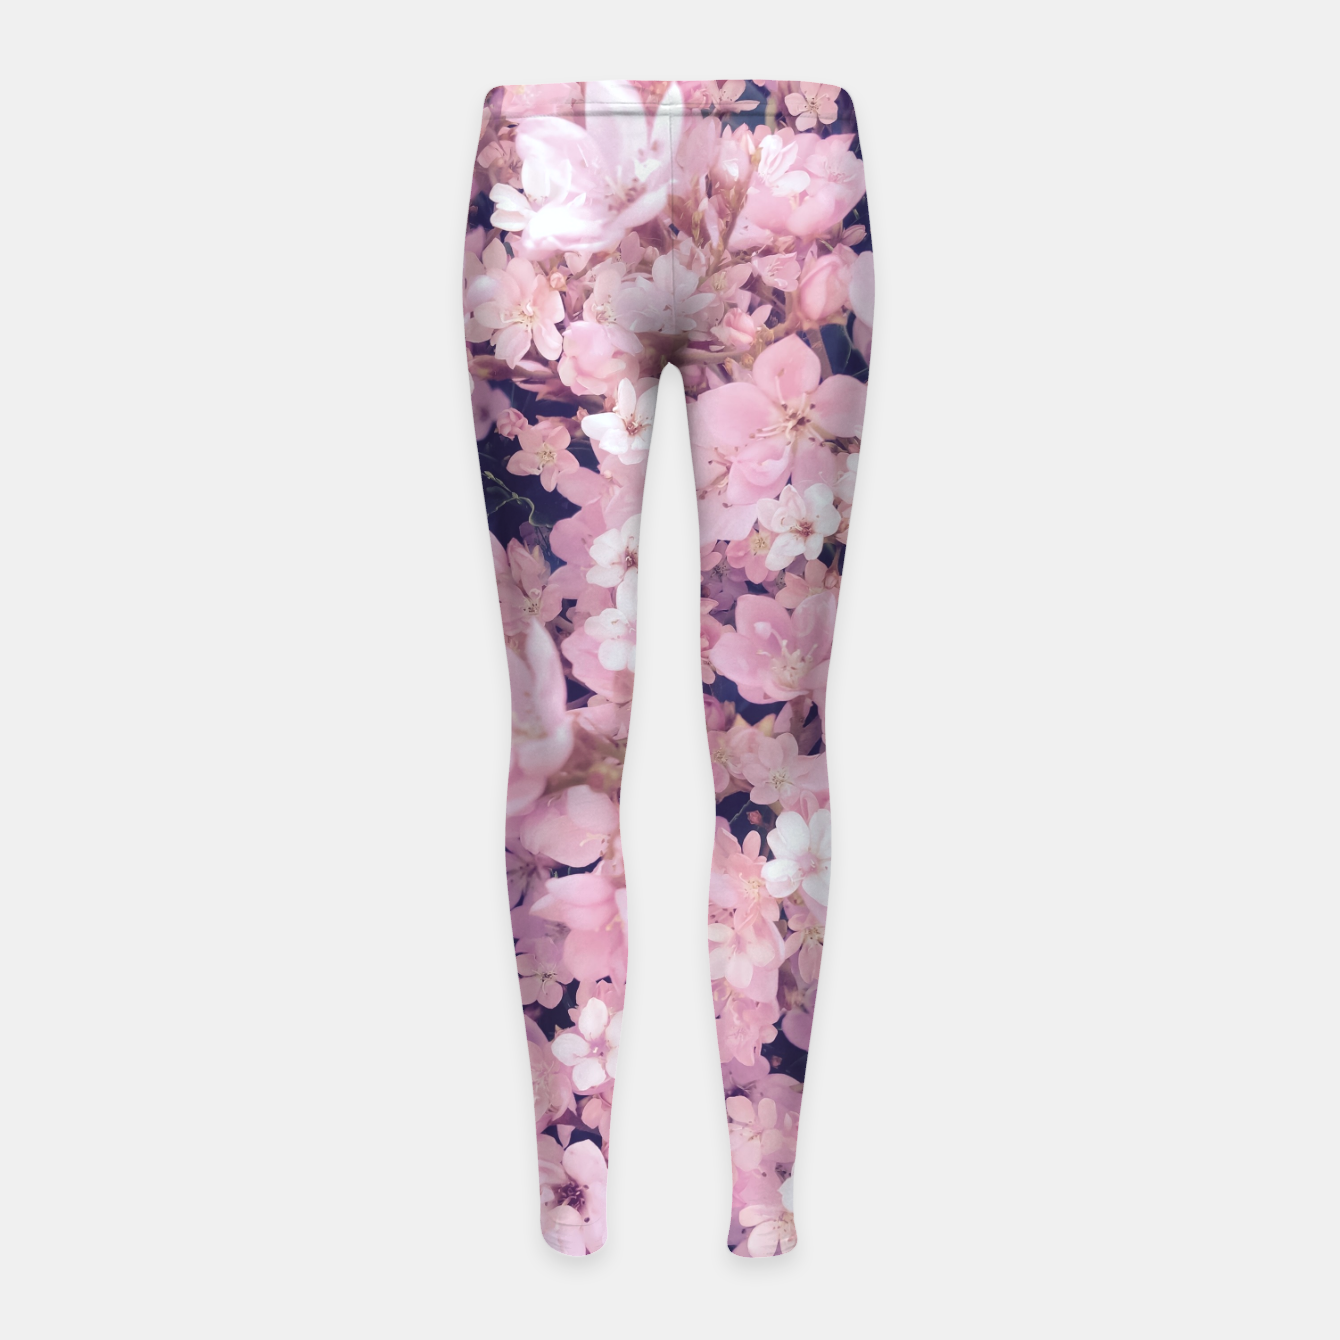 ff442da3a6459c blossom blooming pink flower texture pattern abstract background Girl's  leggings, Live Heroes